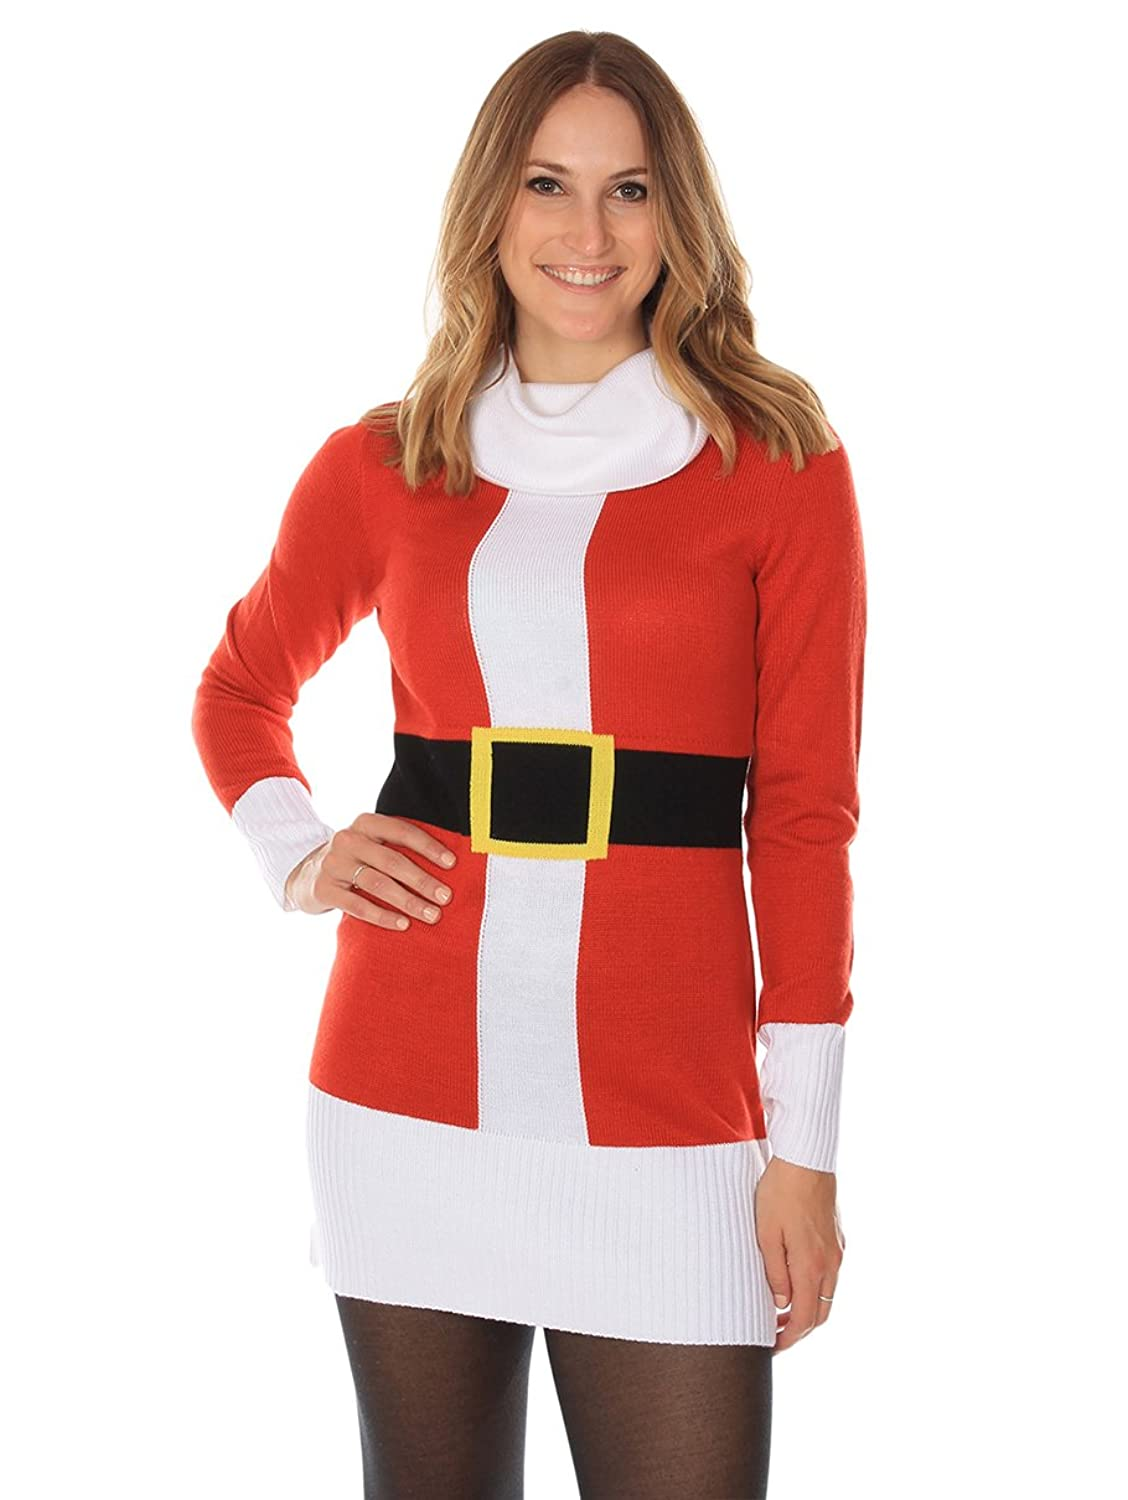 Women's Ugly Christmas Sweater - Santa Claus Sweater Dress Red ...